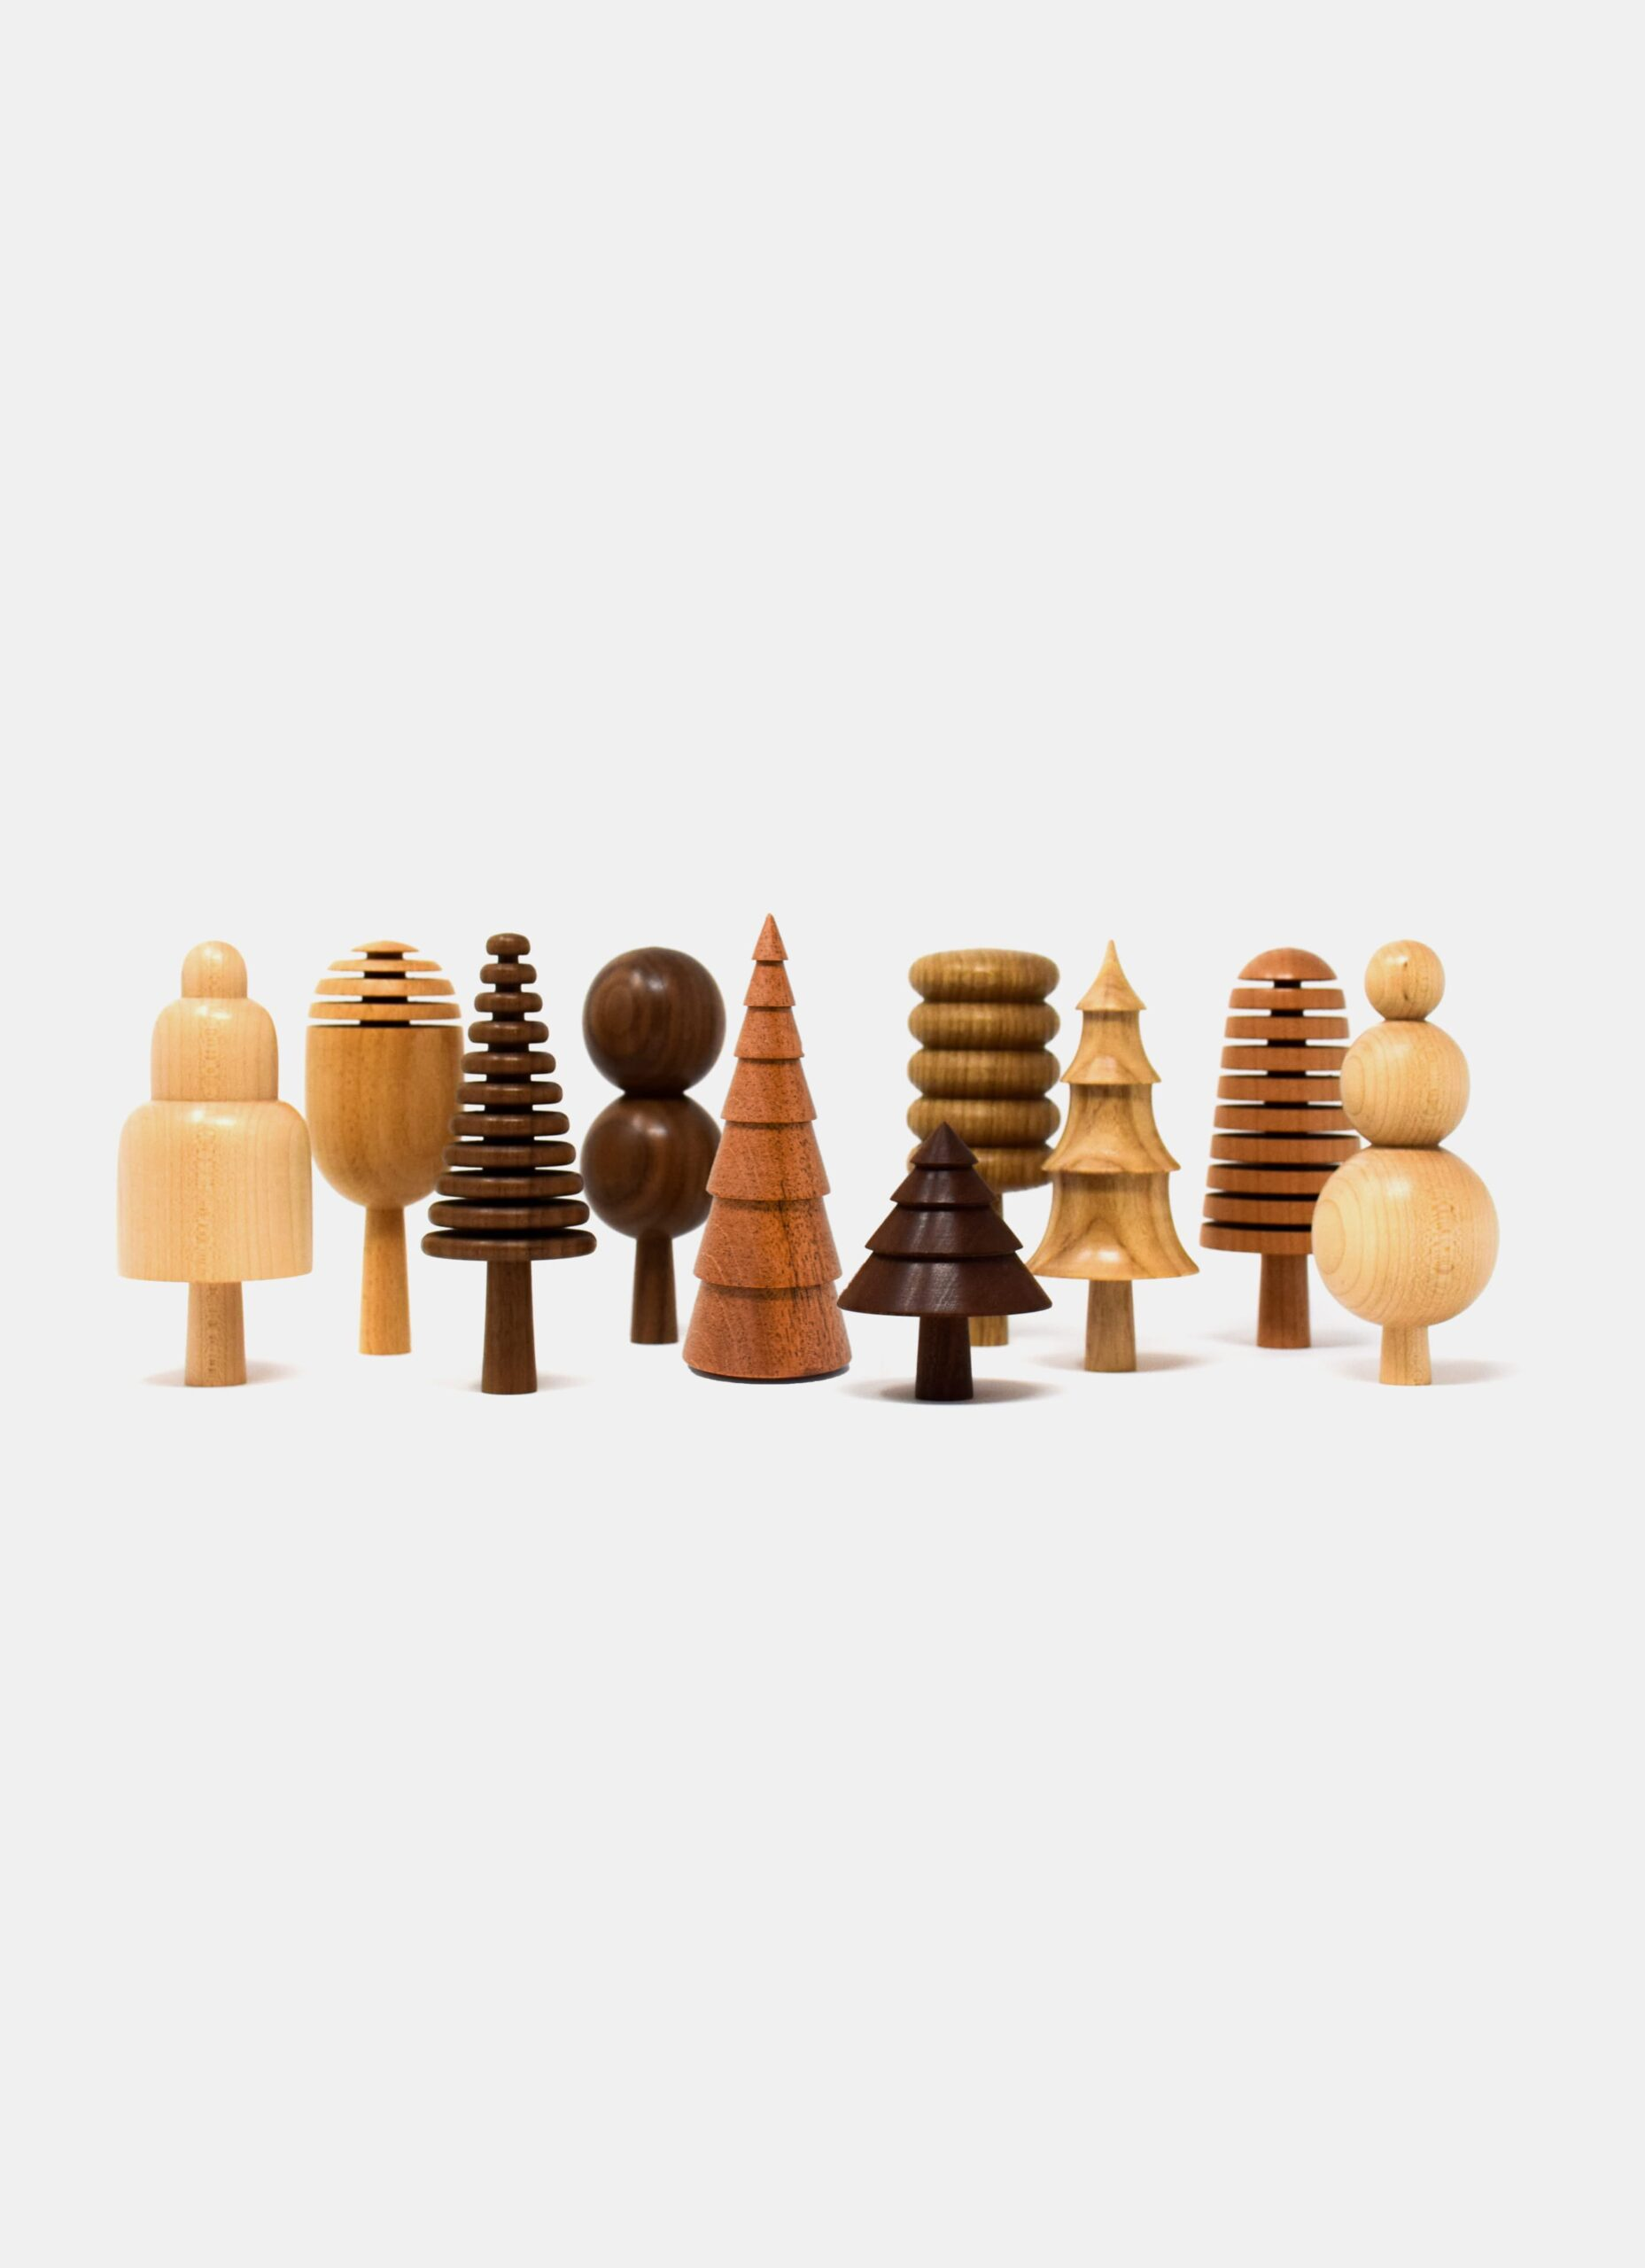 Forge Creative - The Arboretum - Handmade wooden Tree Ornaments - diff. shapes and colors